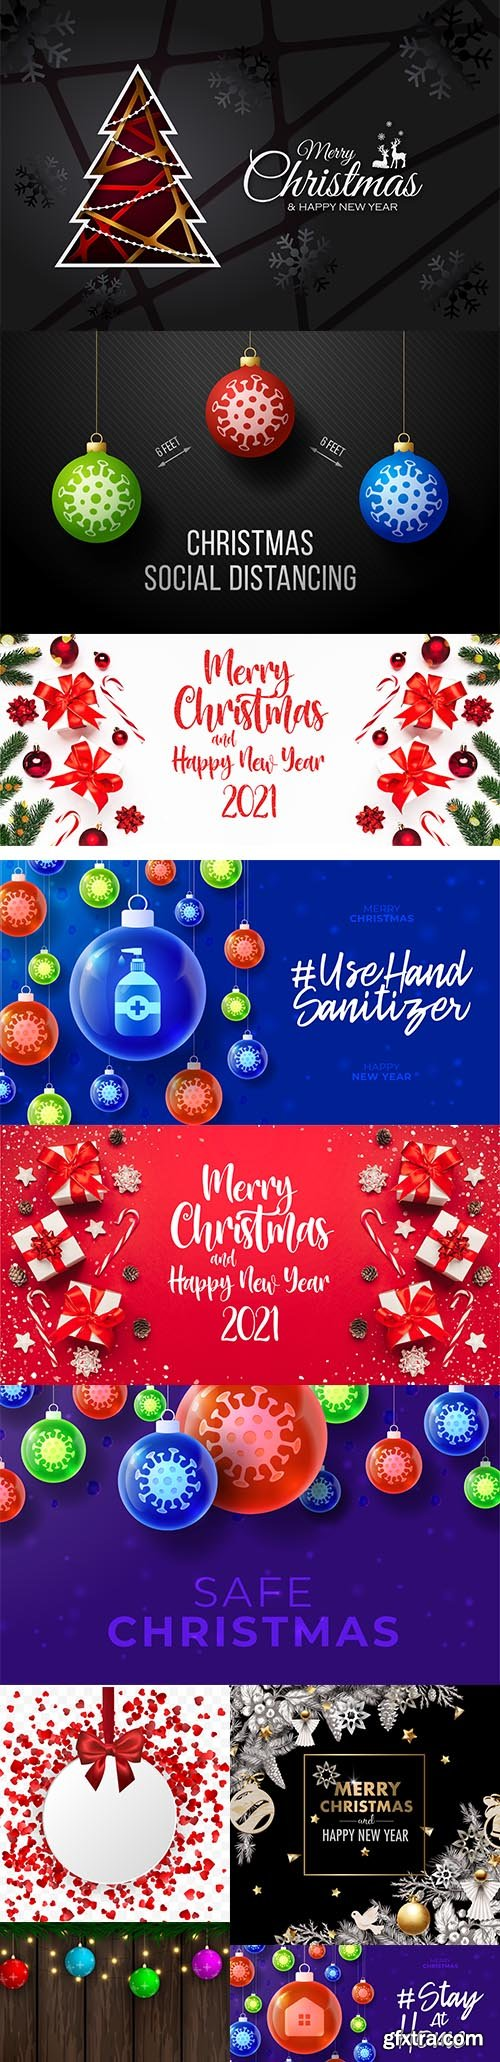 Merry christmas and happy new year 2021 banner